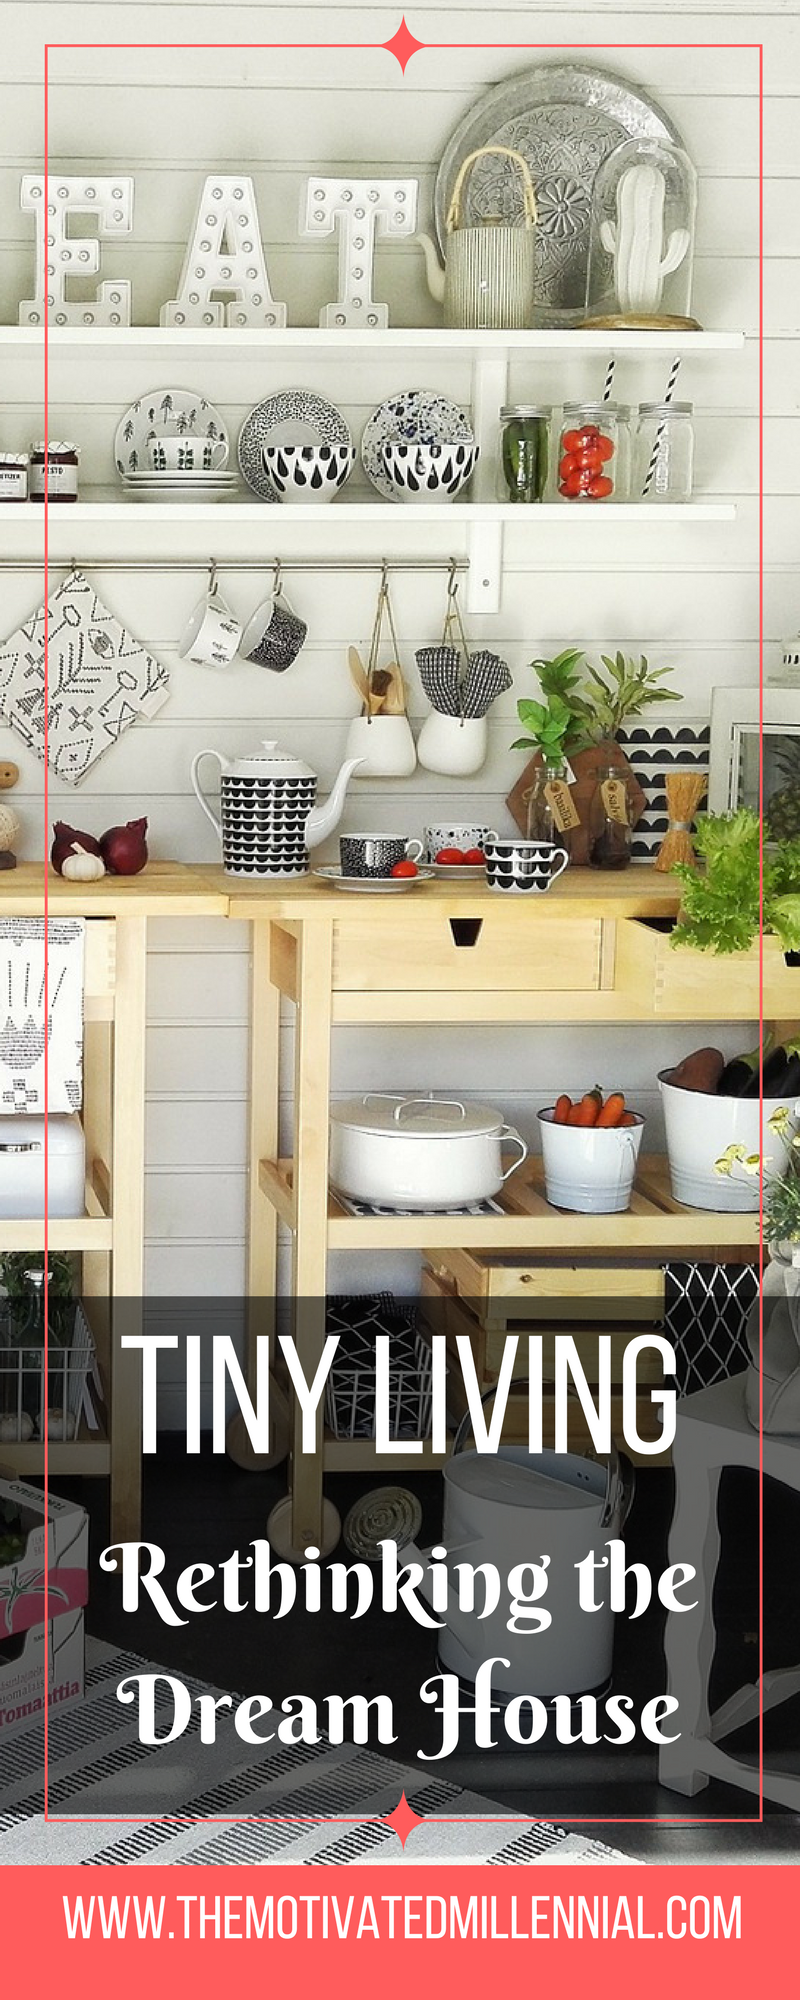 Tiny Living Rethinking The Dream House The Motivated Millennial Tinyhouse Tinyliving